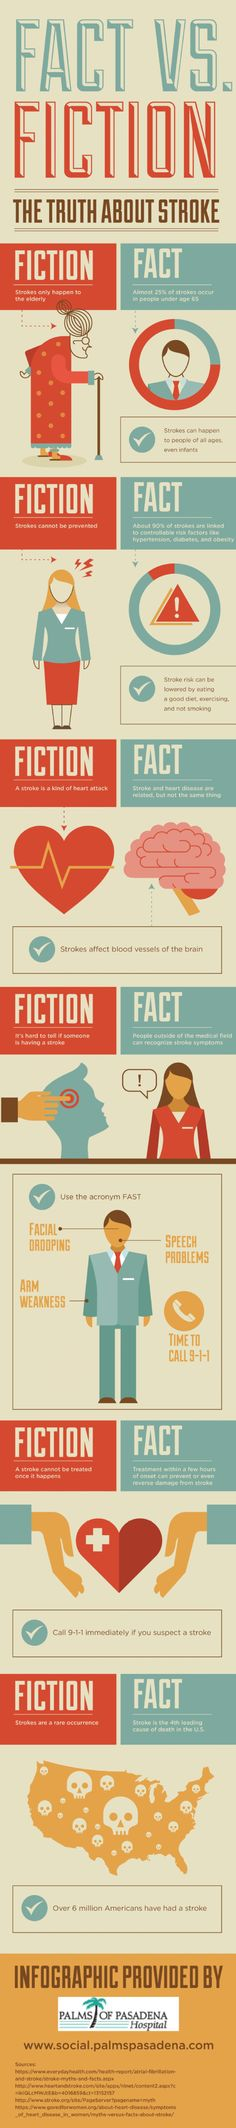 Fact vs. Fiction: The Truth About Stroke --shared by BrittSE on Aug 02, 2014 - See more at: http://visual.ly/fact-vs-fiction-truth-about-stroke#sthash.dkHHAO6X.dpuf